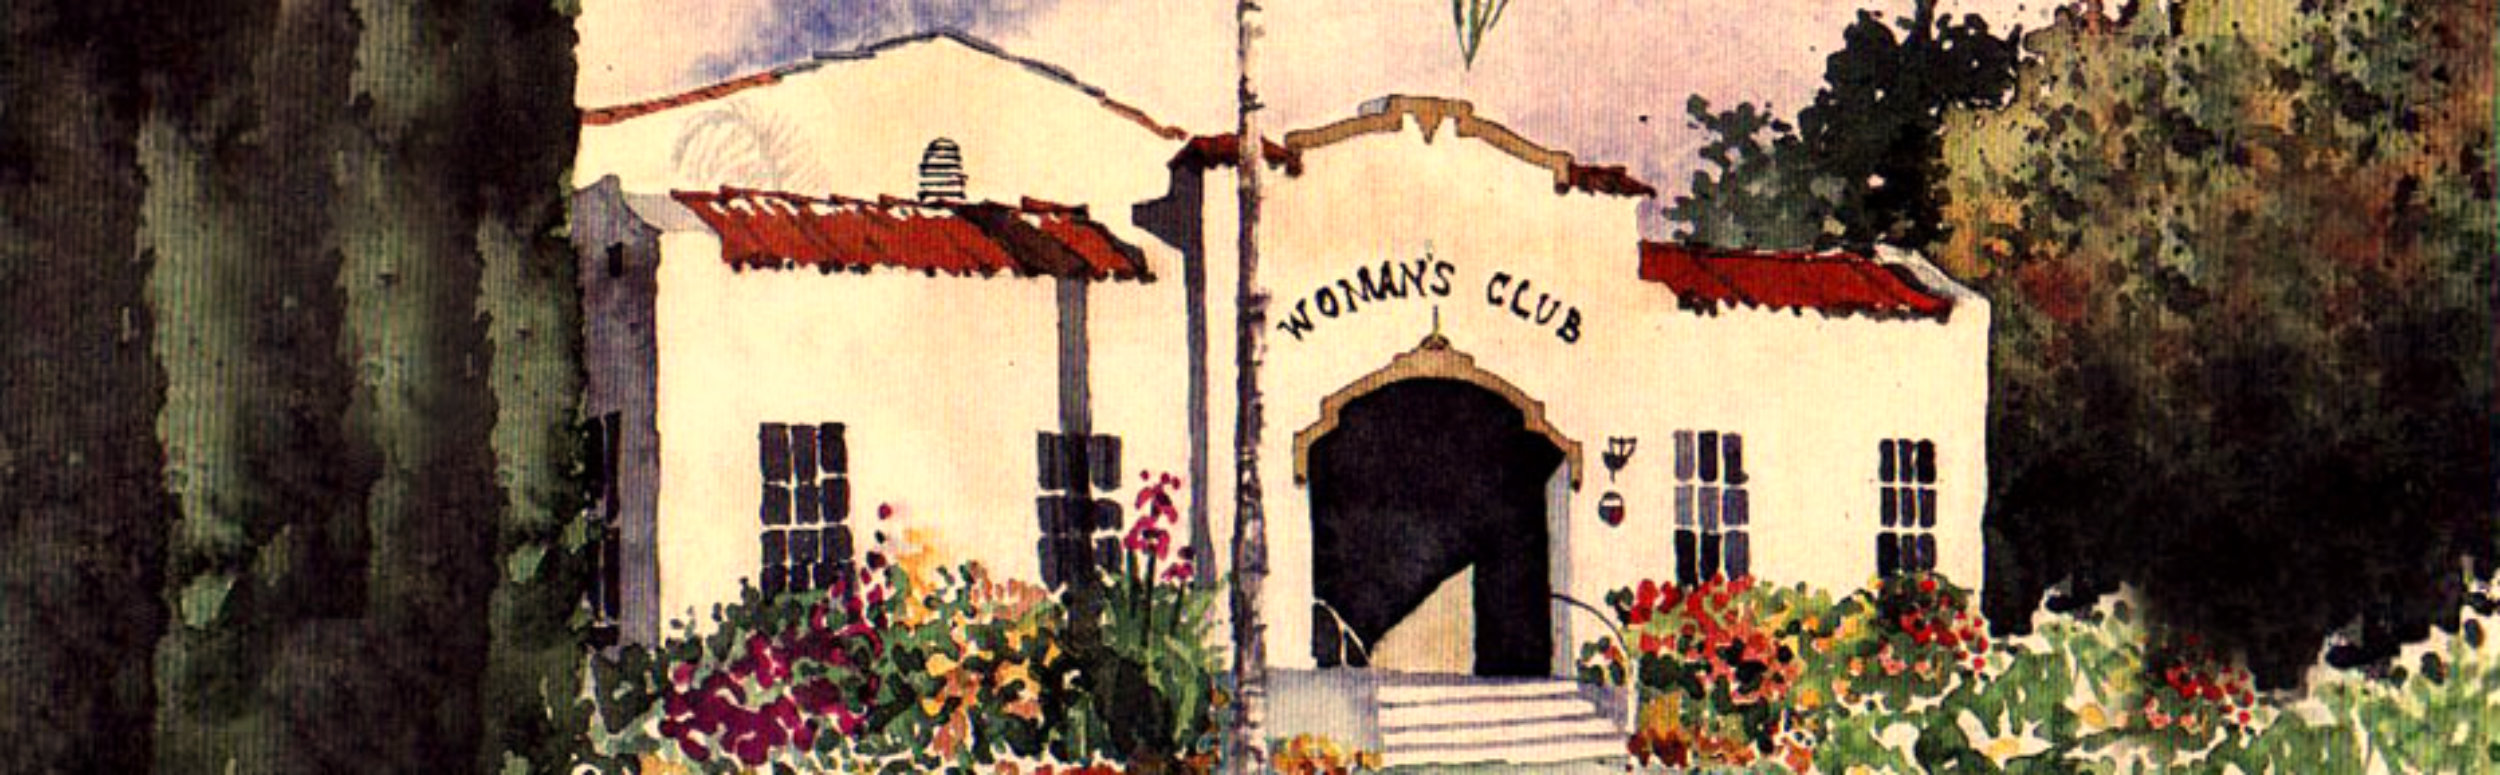 The Woman's Club Event Center in Orange Vintage Watercolor Painting